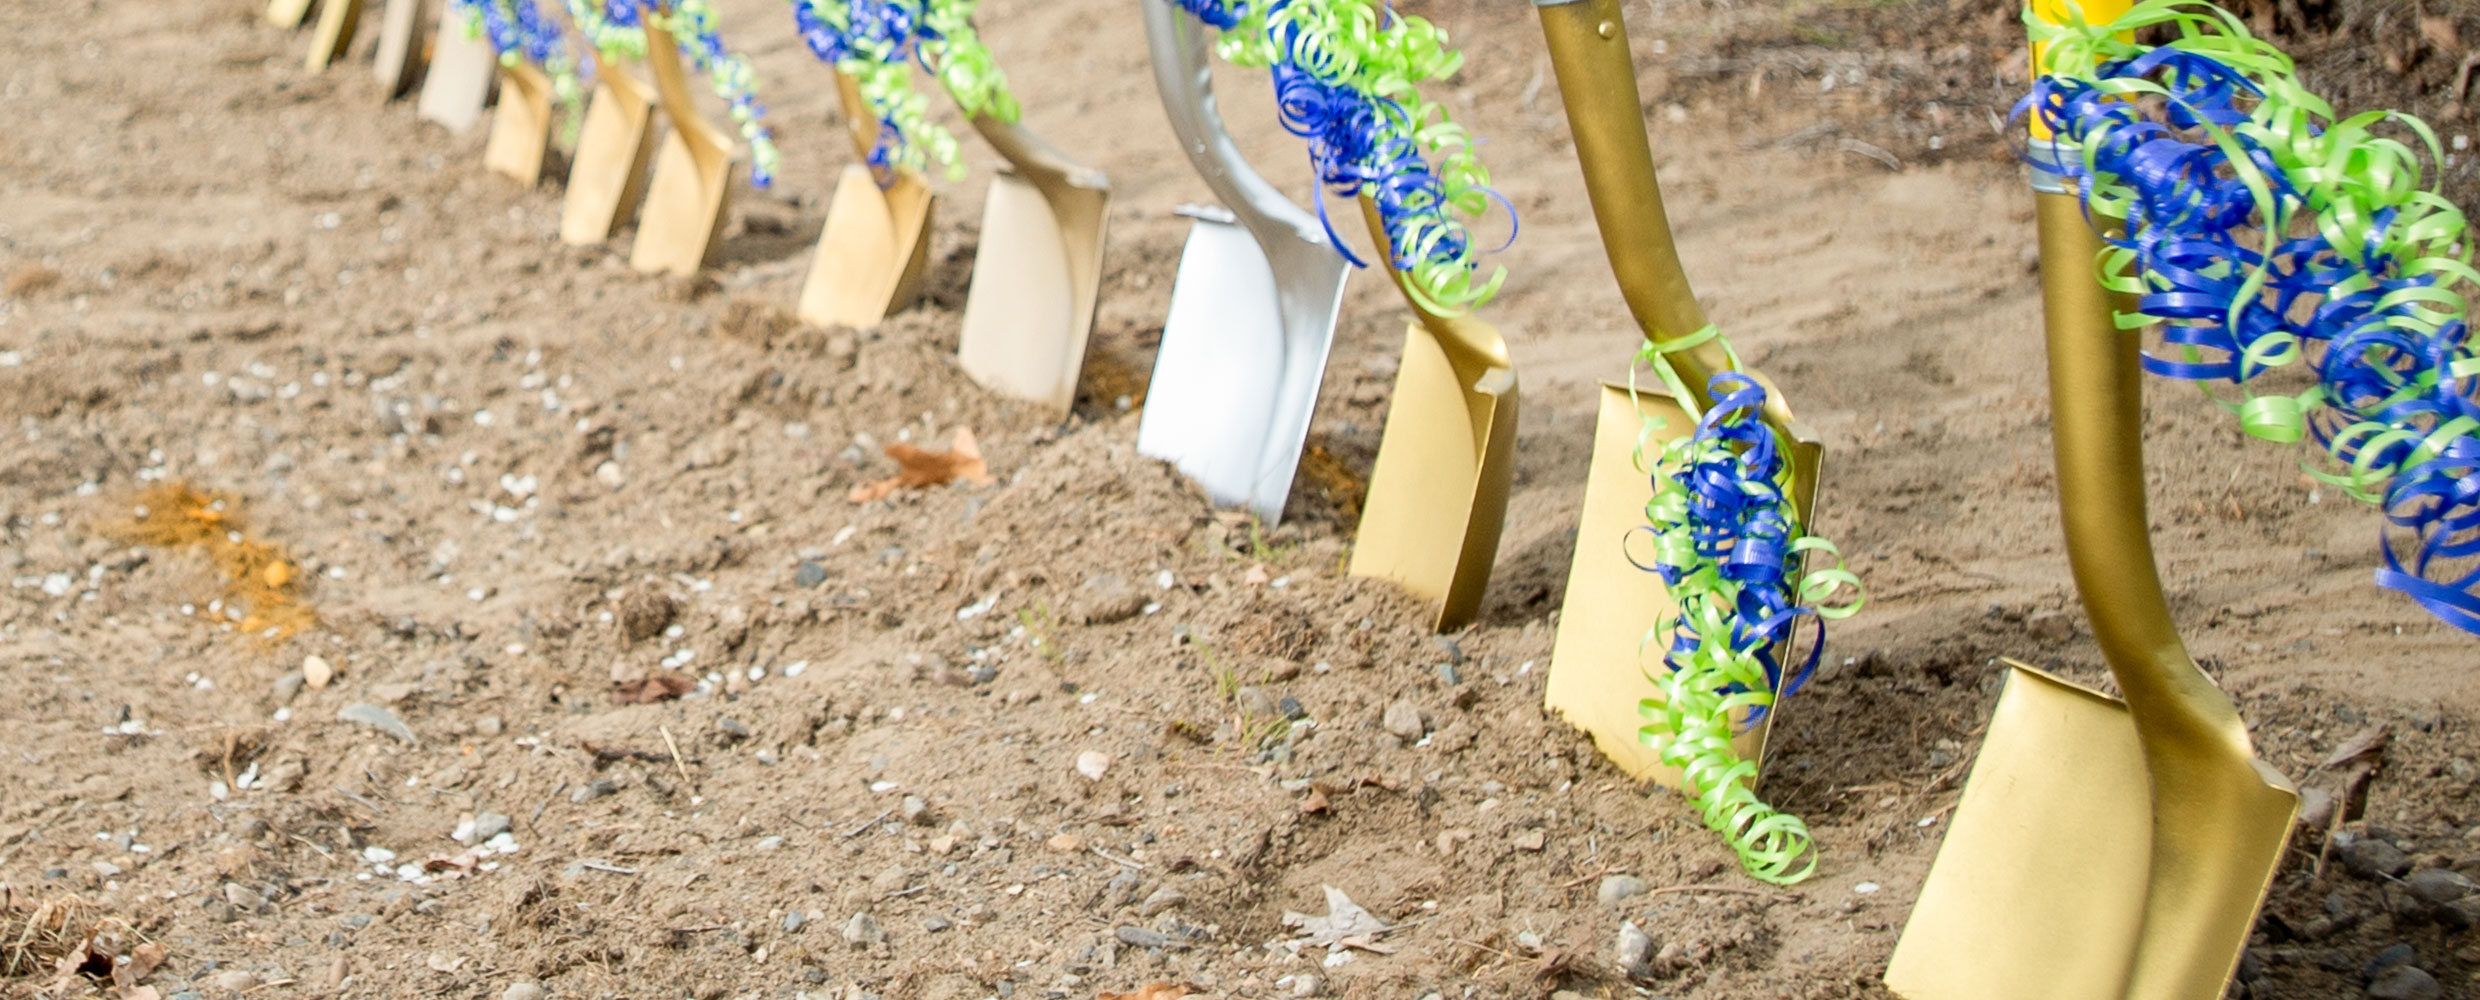 Ceremonial shovels in the dirt at Vista Field groundbreaking event.